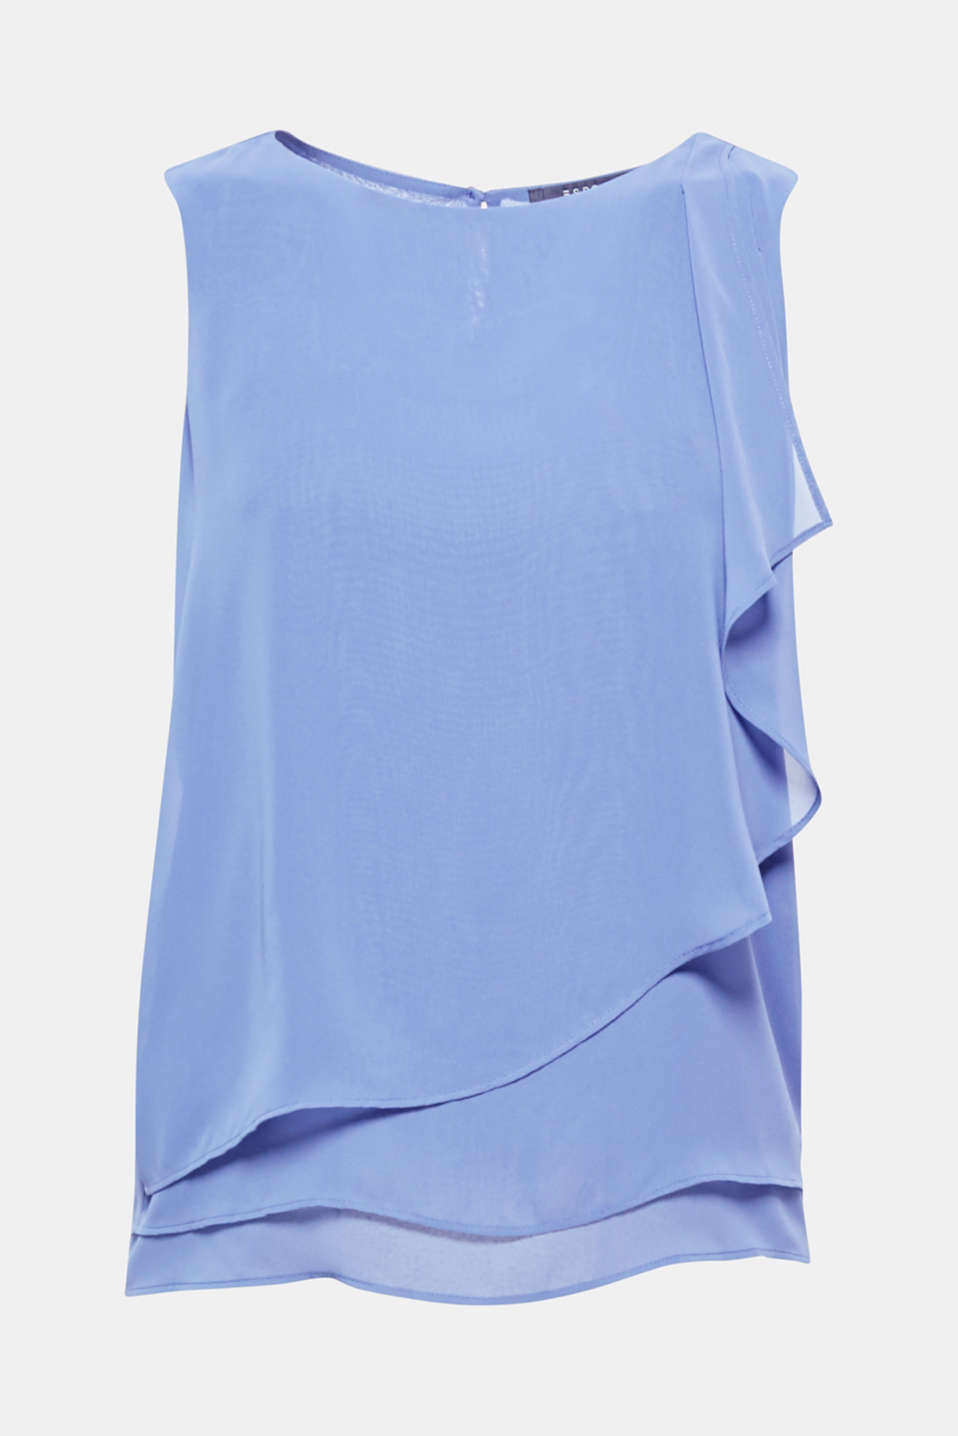 This dainty chiffon top with a softly draped, layered front section is perfect for lots of occasions and looks!